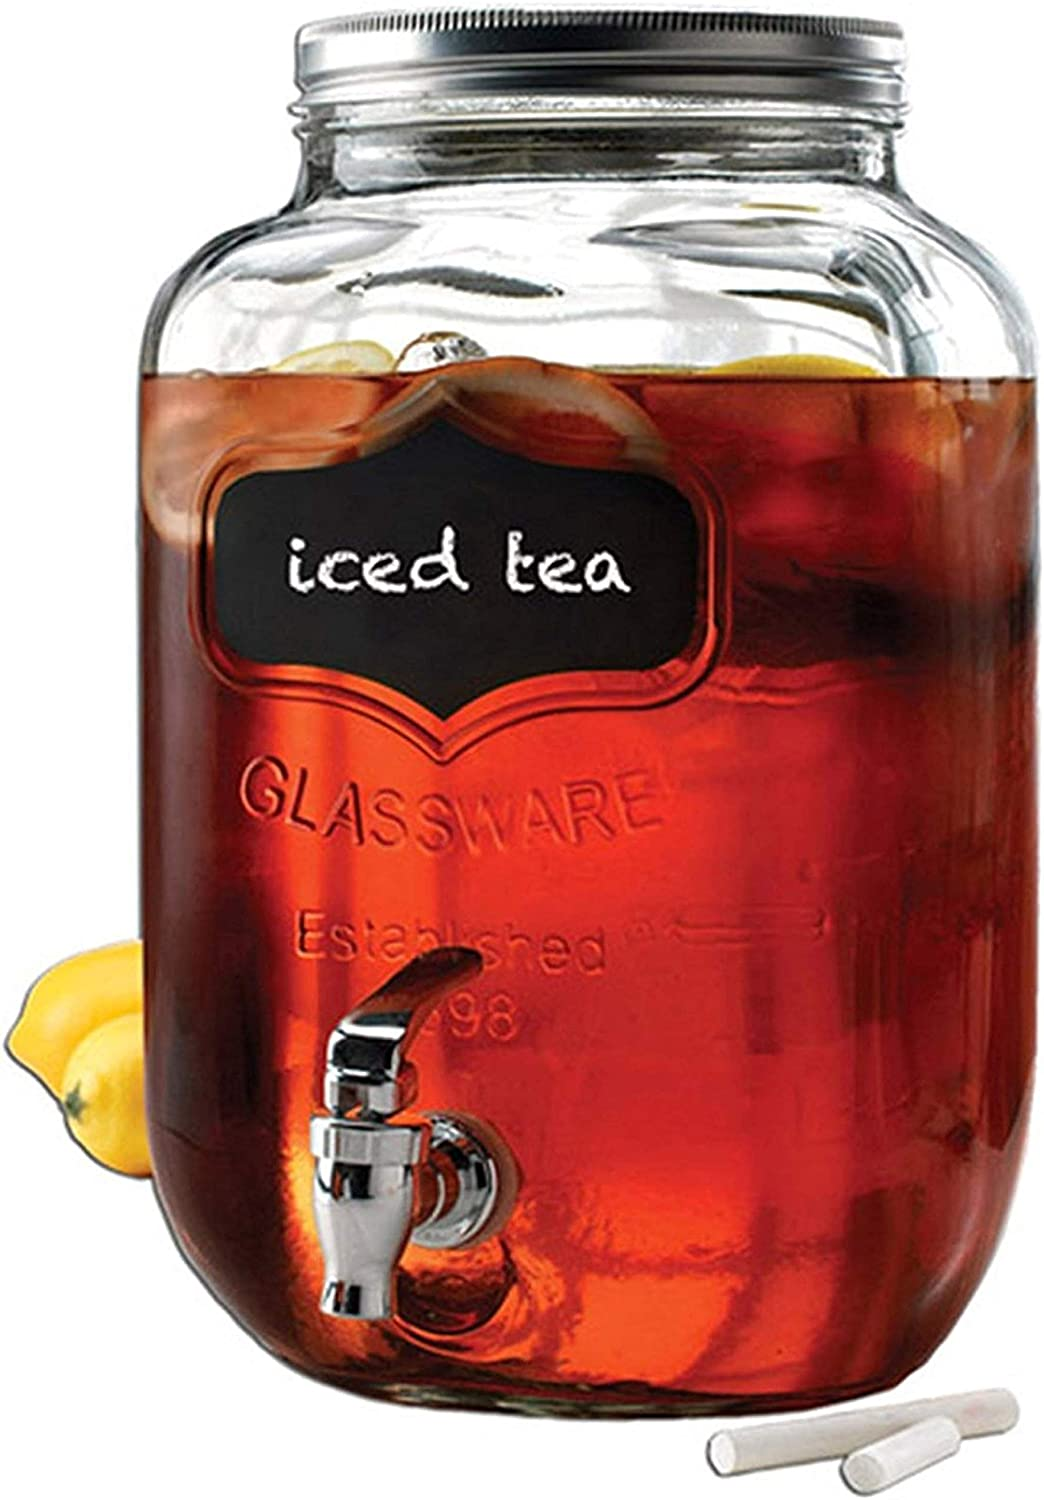 Circleware Chalkboard Sun Tea Mason Jar Beverage Dispenser, Fun Party New Entertainment Home Kitchen Glassware Pitcher for Water, Juice, Beer, Punch & Iced Cold Drinks, Yorkshire, 2 Gallon